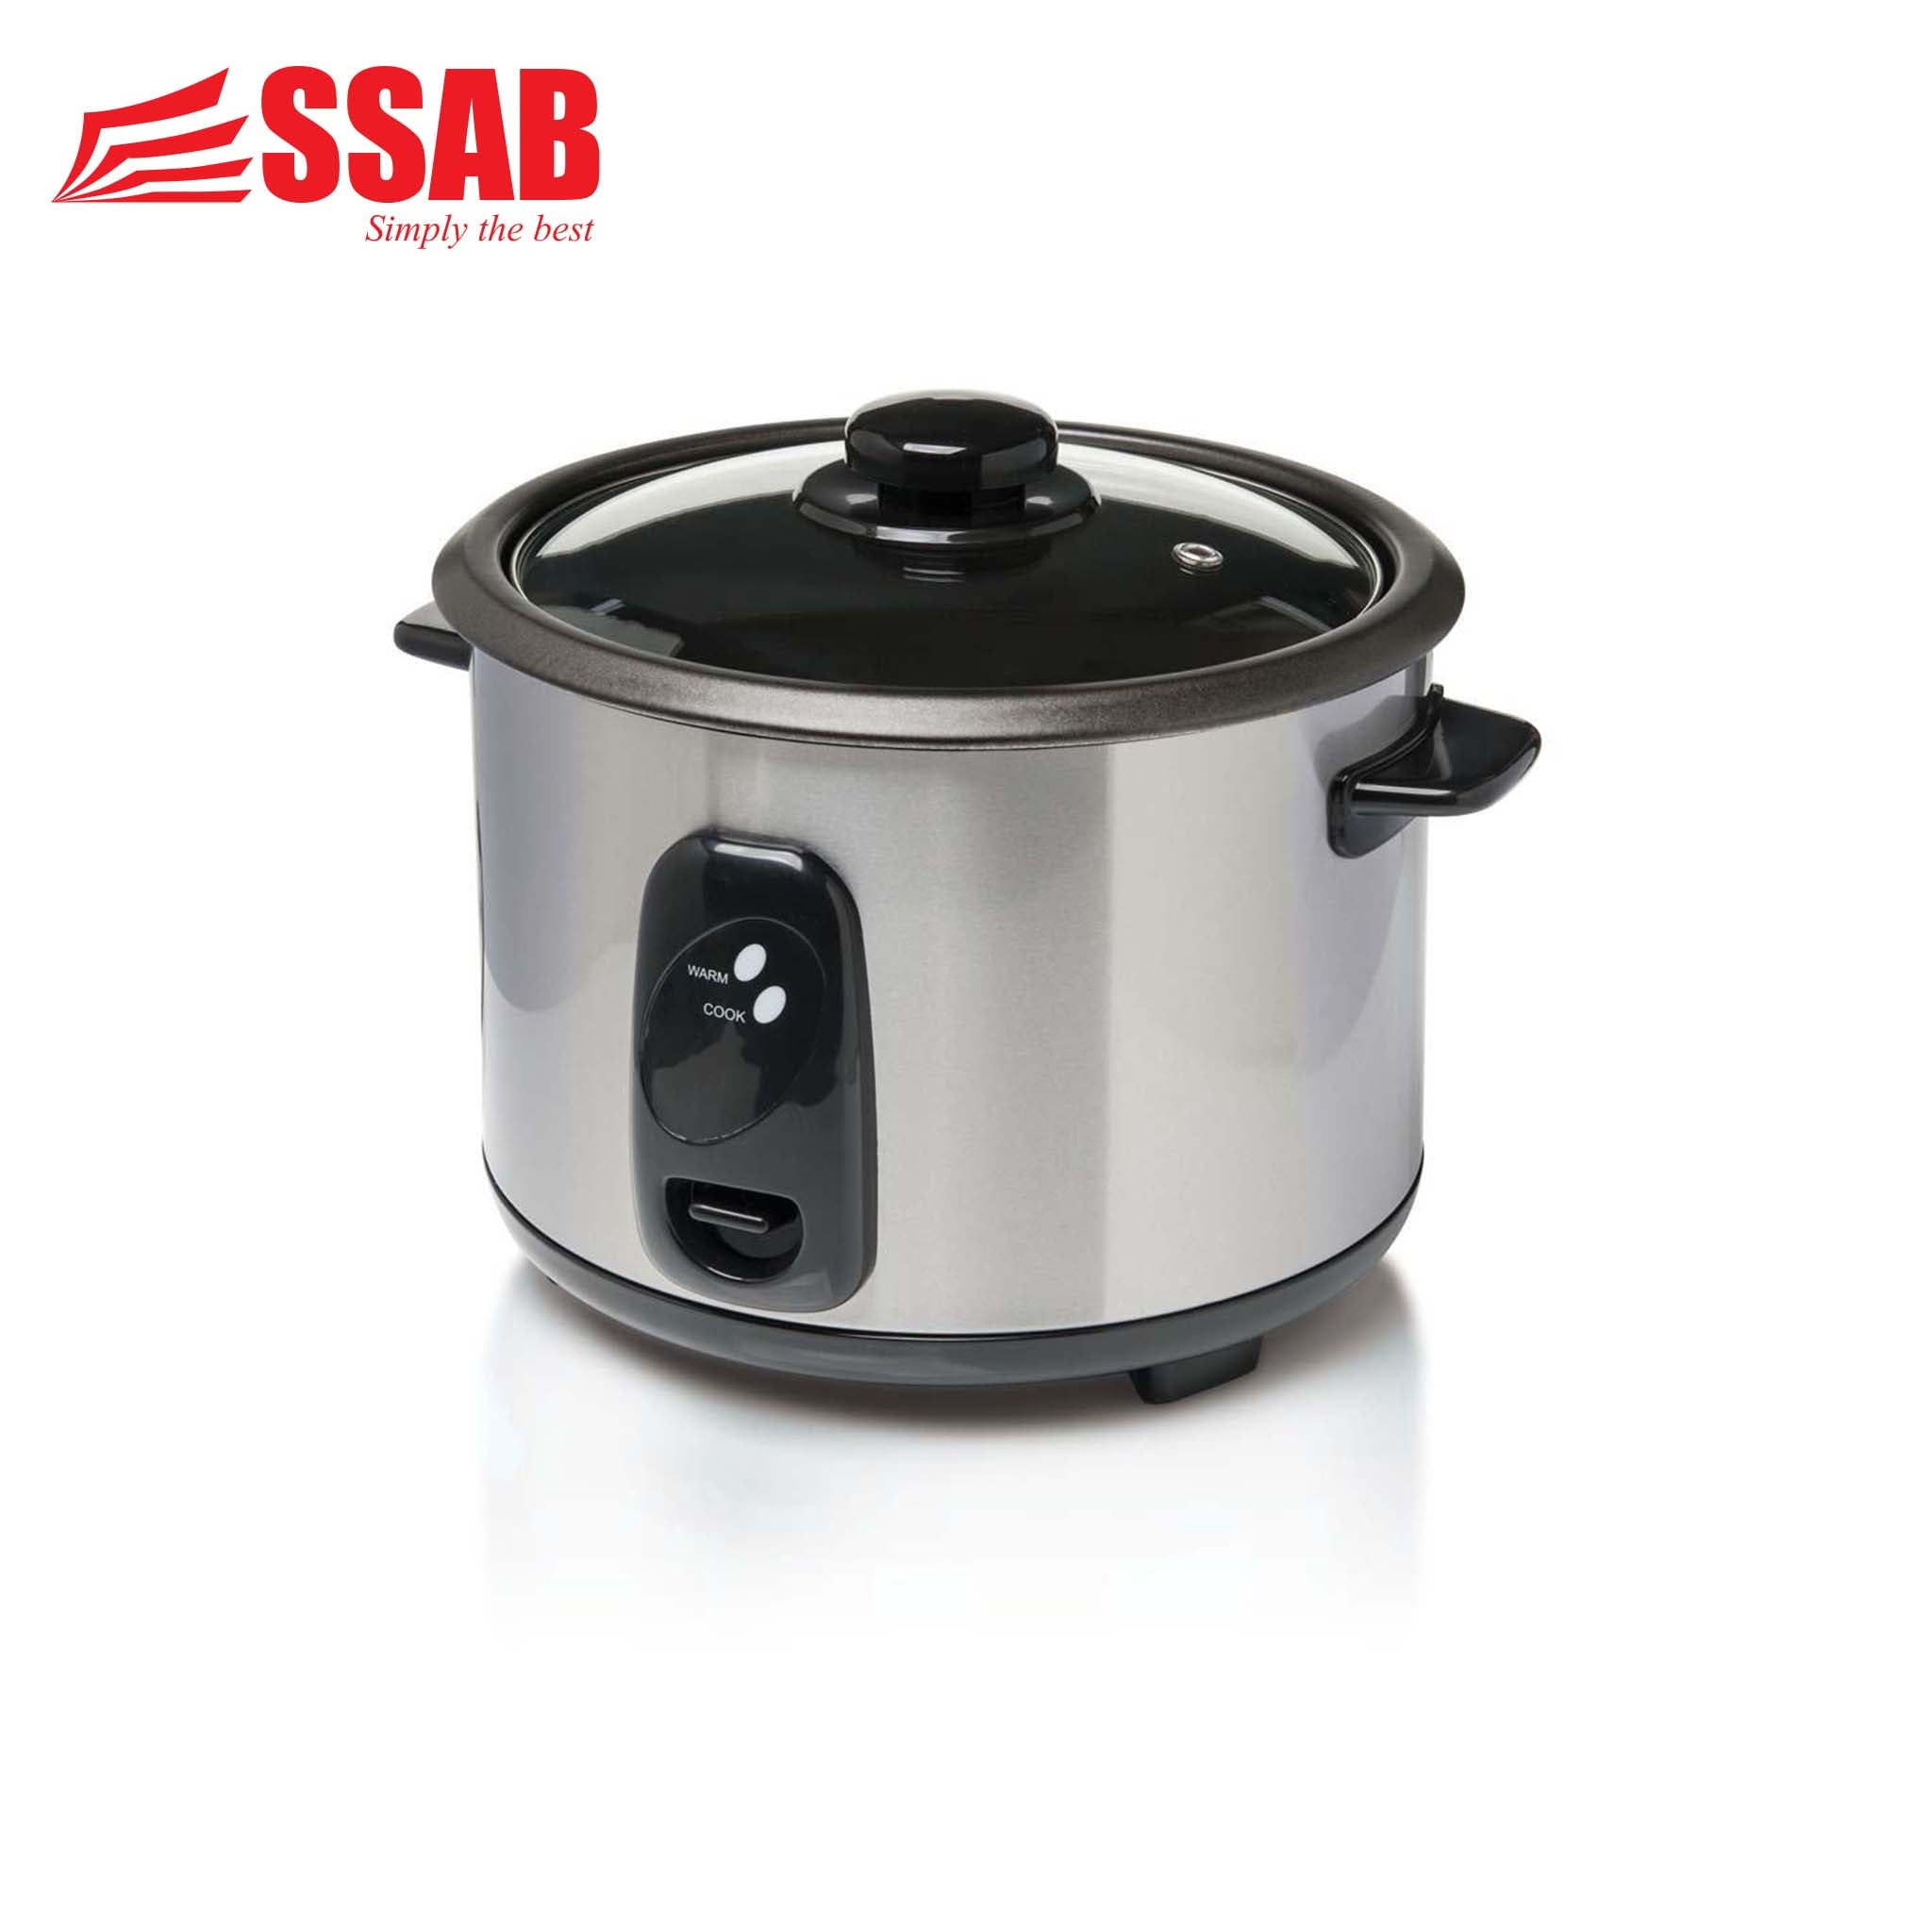 Sheffield Rice Cooker 10 Cup w/ Steam